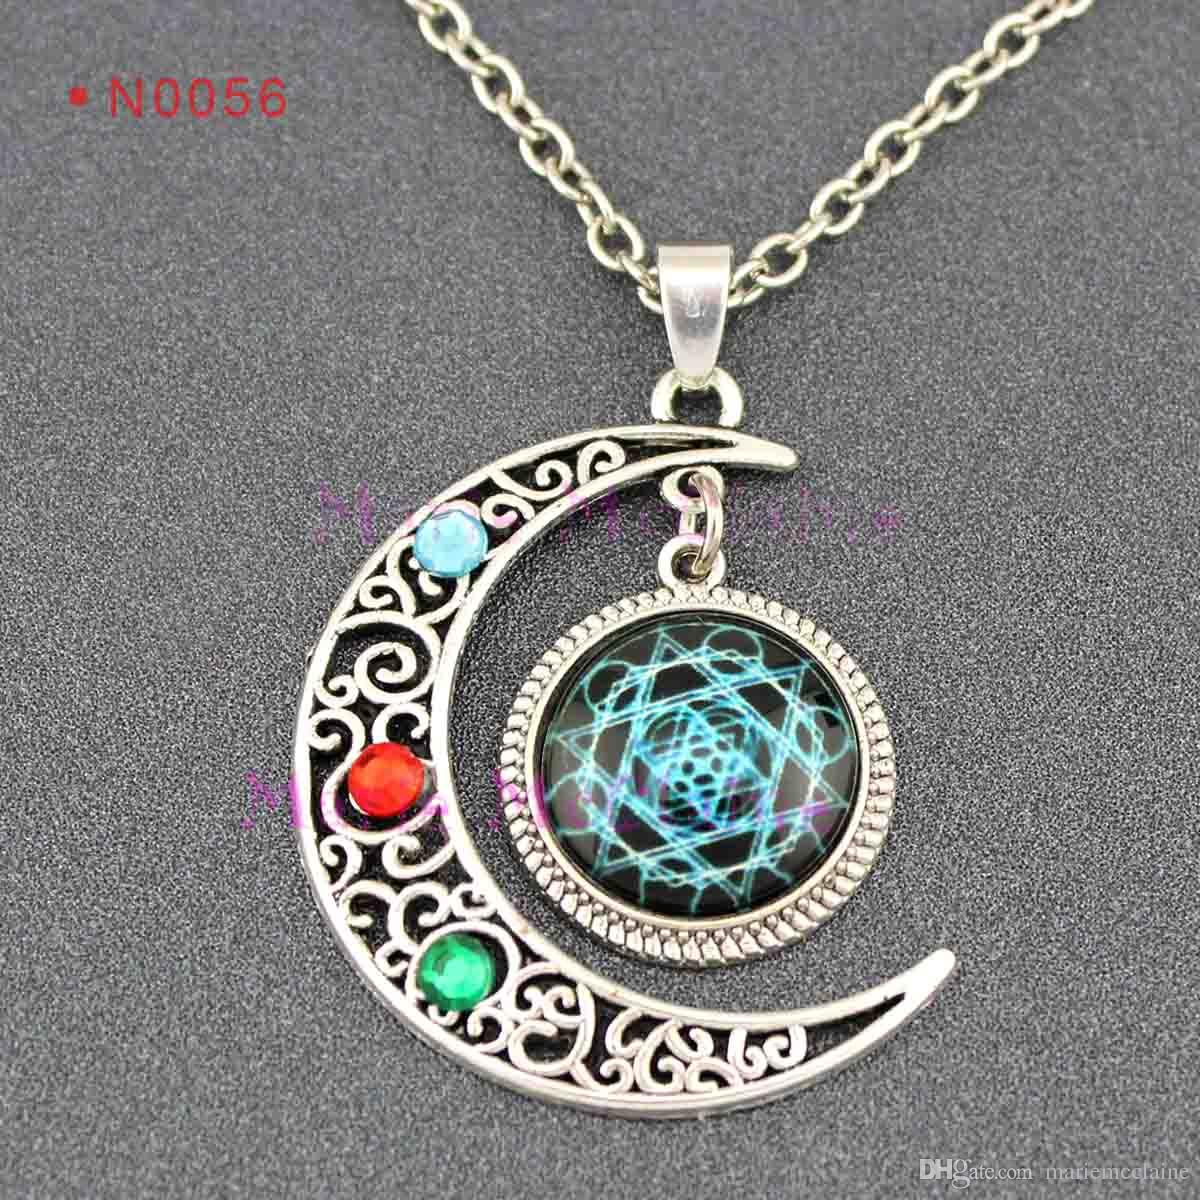 Nebula Moon Necklace (page 2) - Pics about space